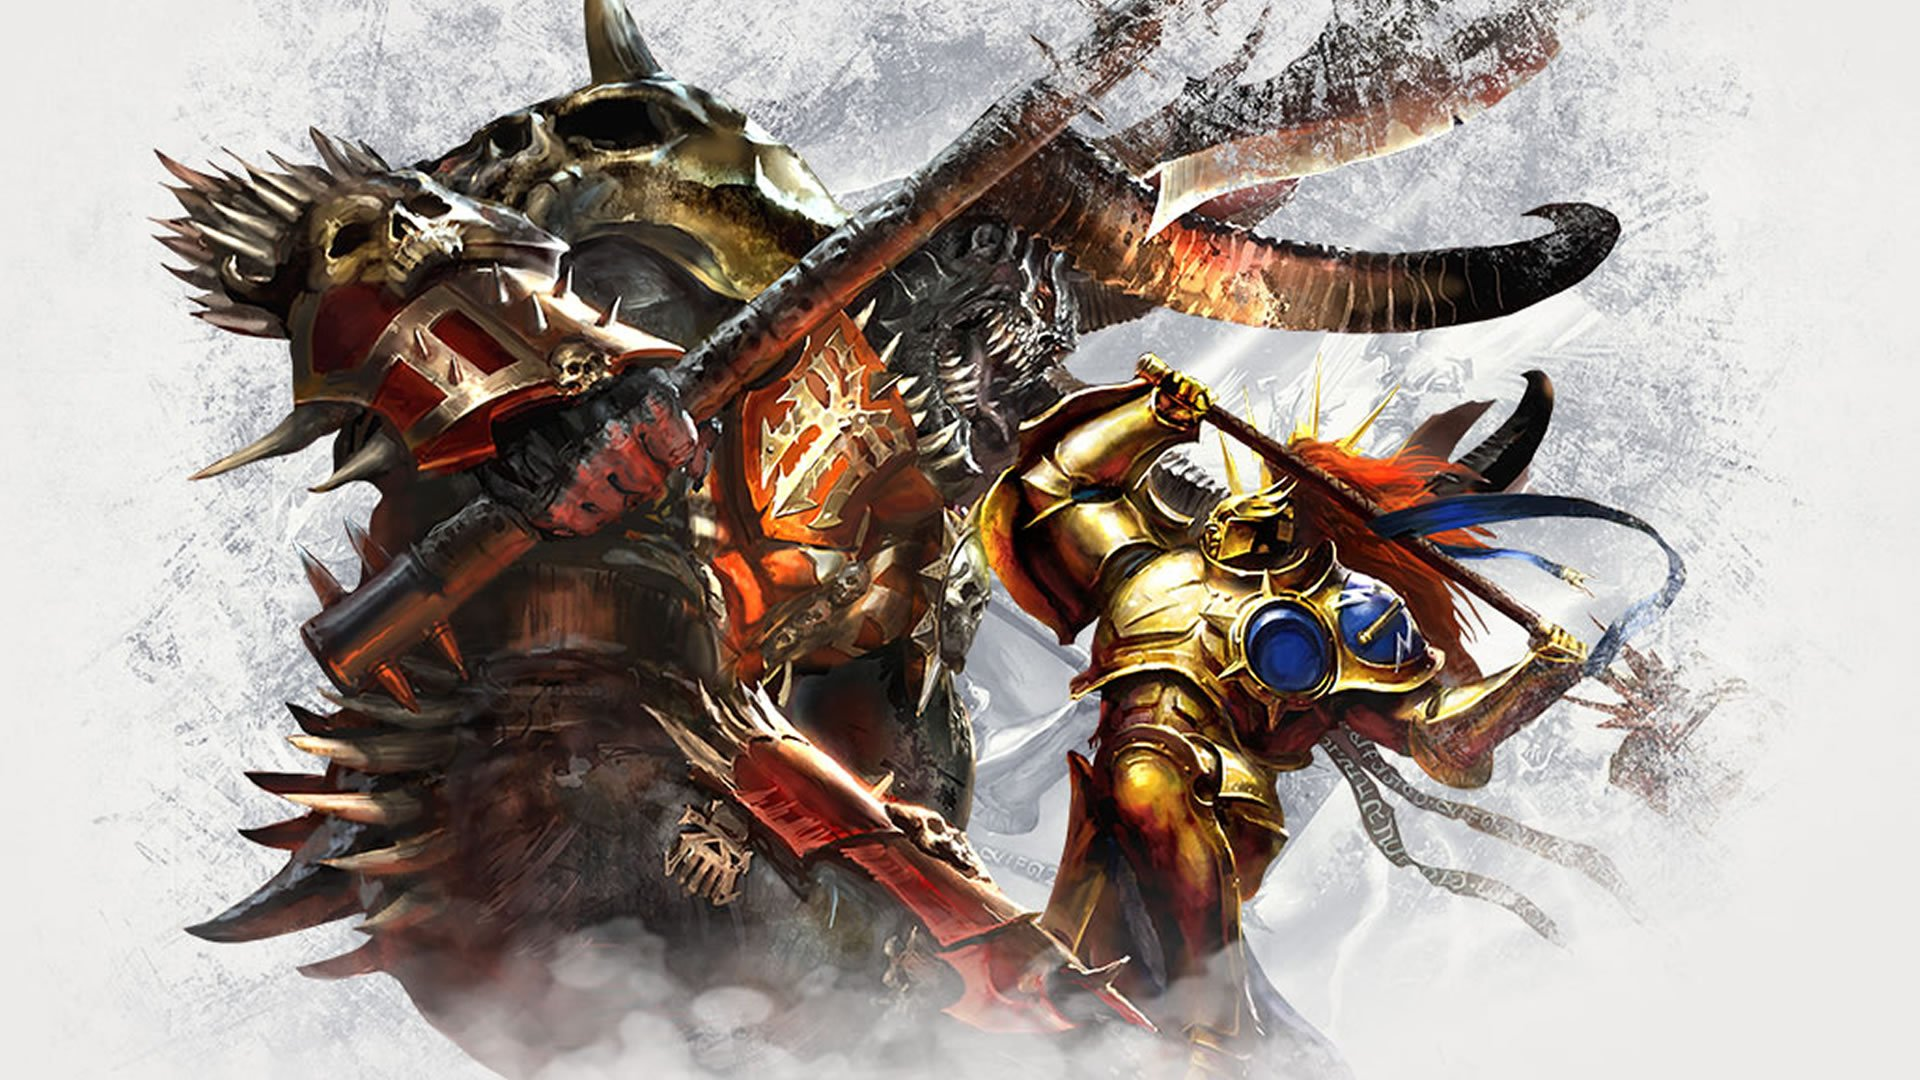 Warhammer Age Of Sigmar Champions Launches On Switch In April